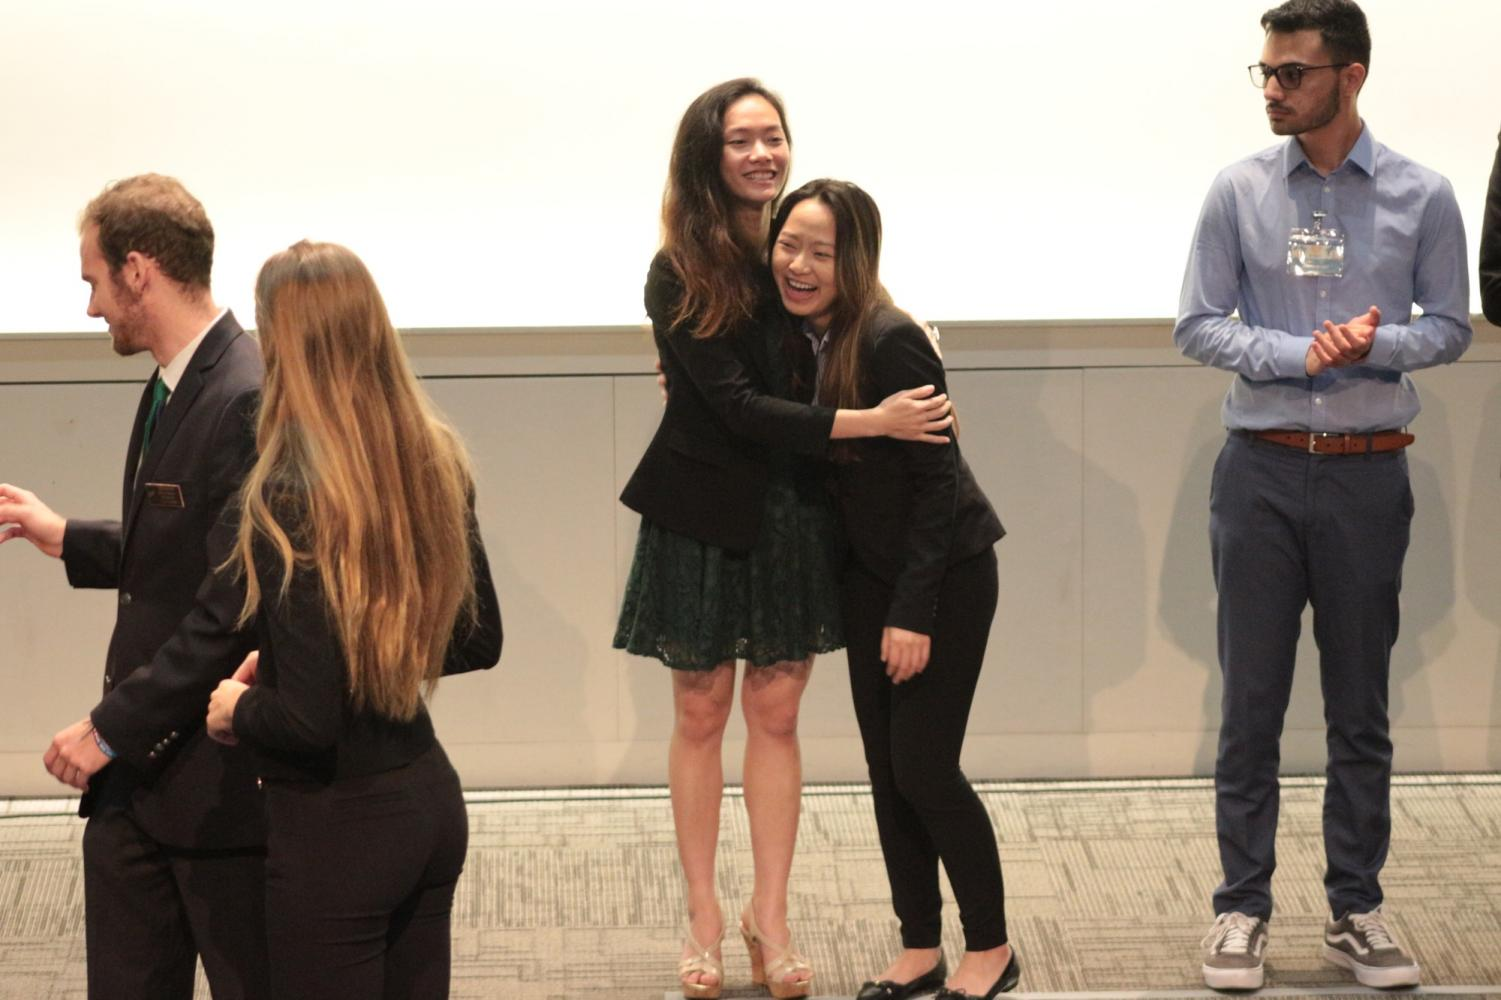 Kimberly Hong, director of programs, hugs Kelly Seang, accounting major, when her name was announced for first place in accounting principles. Phi Beta Lambda represented Cerritos College at the 2018 State Business Leadership Conference on April 6-8.